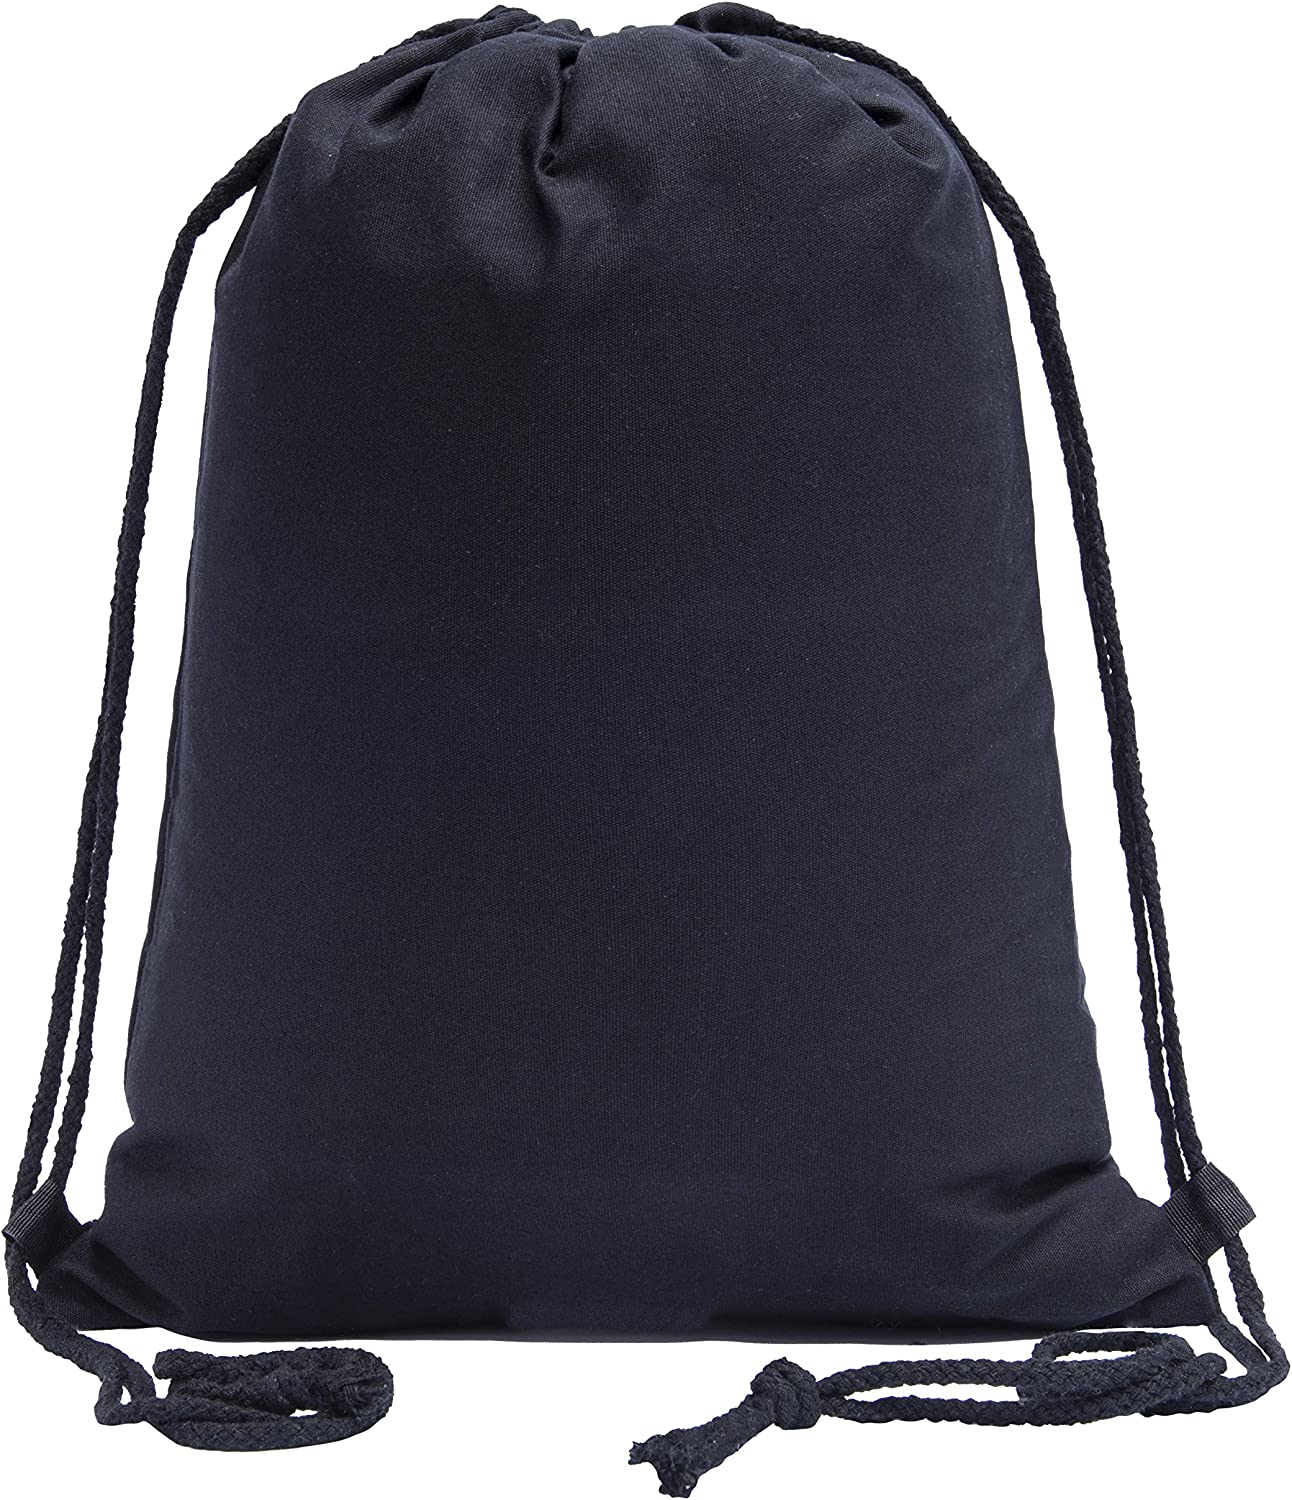 Mato Hash Cotton Drawstring Bags Sale Special Price Pull Memphis Mall Back Promotional String